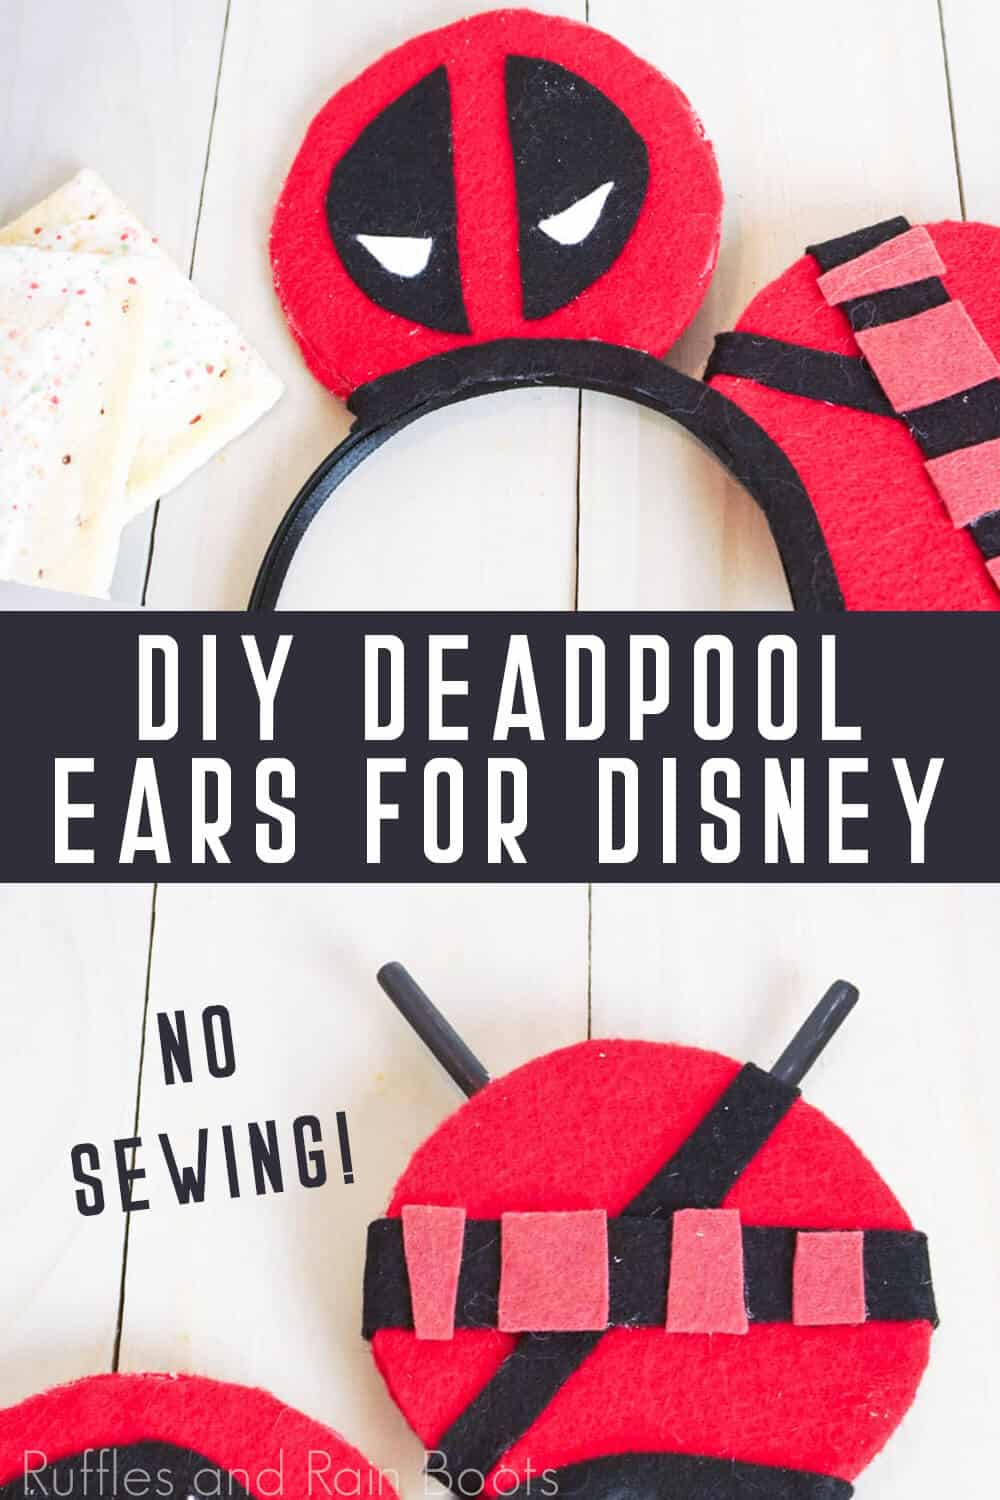 photo collage of awesome deadpoo ears for disney diy mickey ears with text which reads diy deadpoo ears for disney no sewing